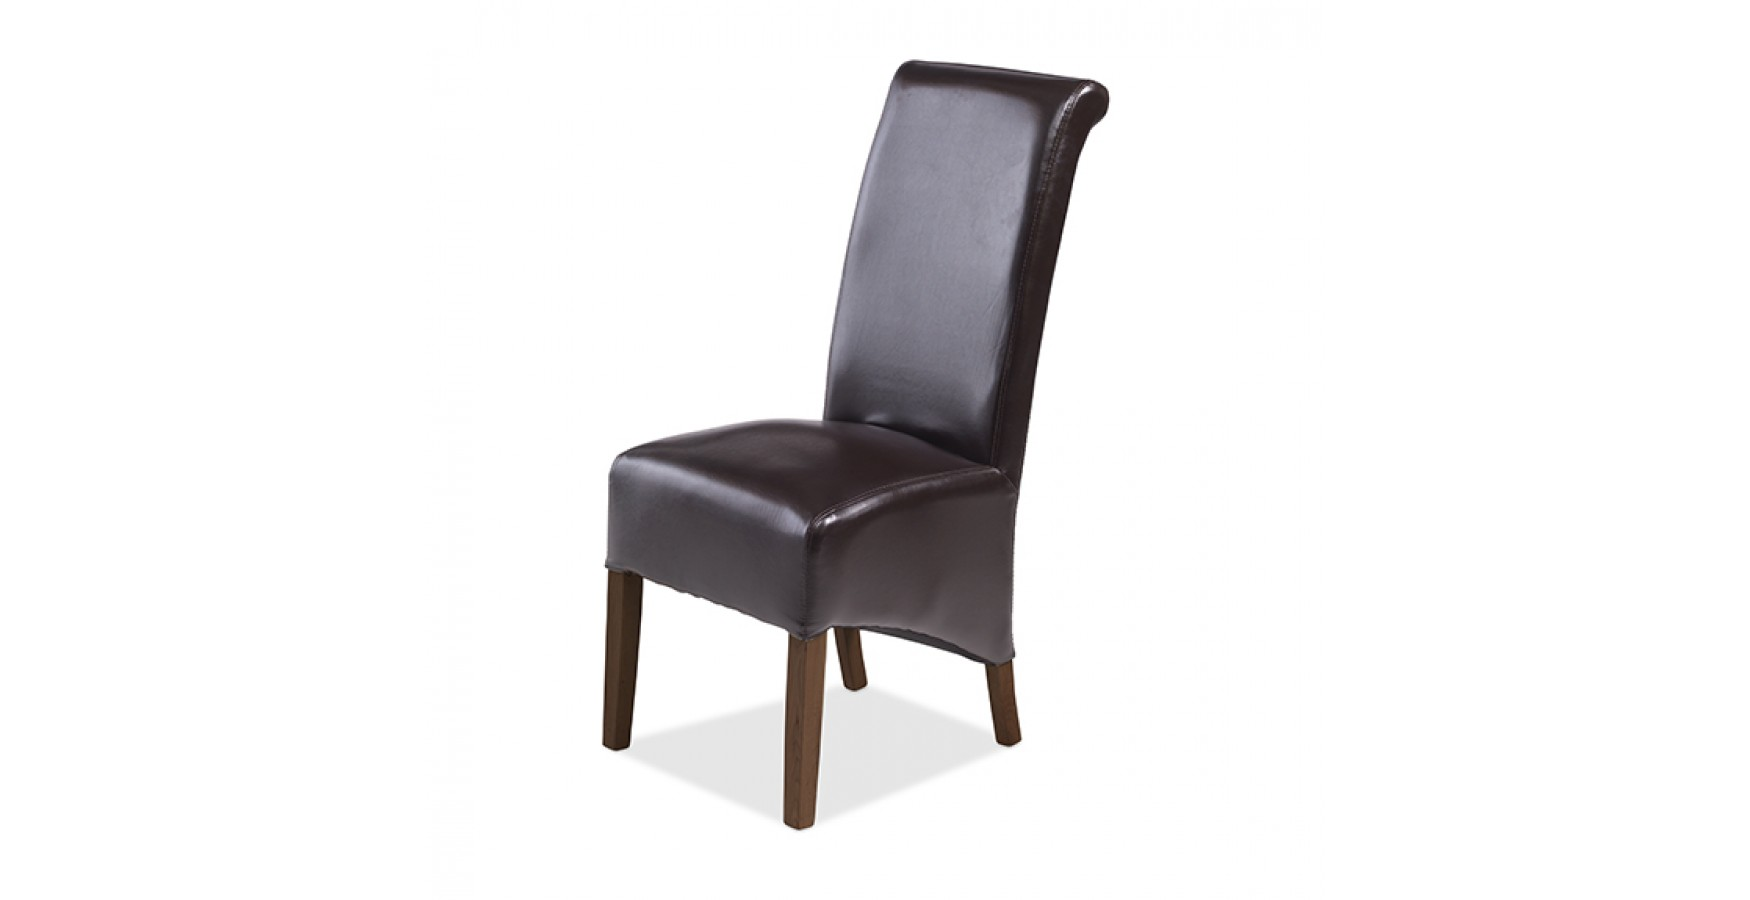 Fine Bonded Leather Dining Chair Spiritservingveterans Wood Chair Design Ideas Spiritservingveteransorg